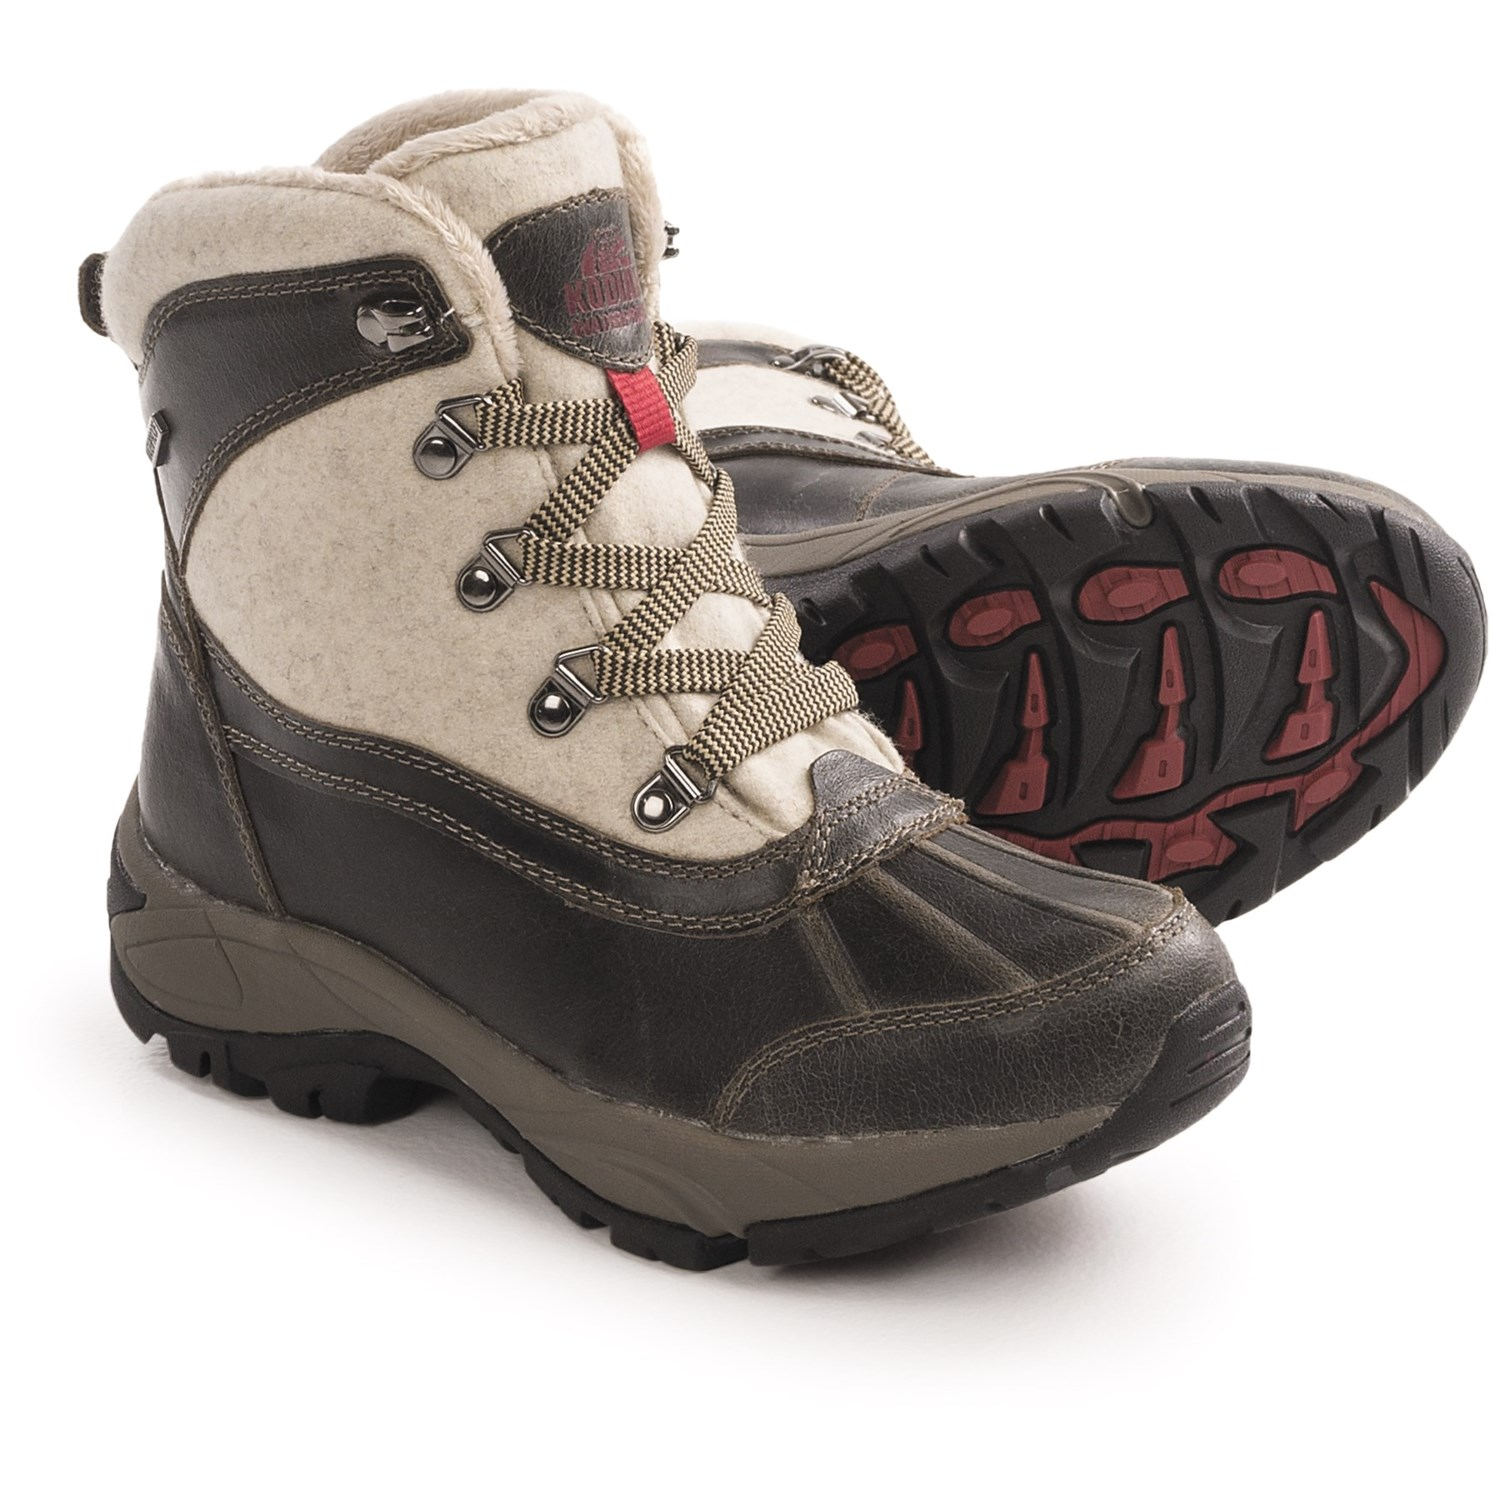 Kodiak Rochelle Snow Boots (For Women) - Save 79% 80c1ef19a